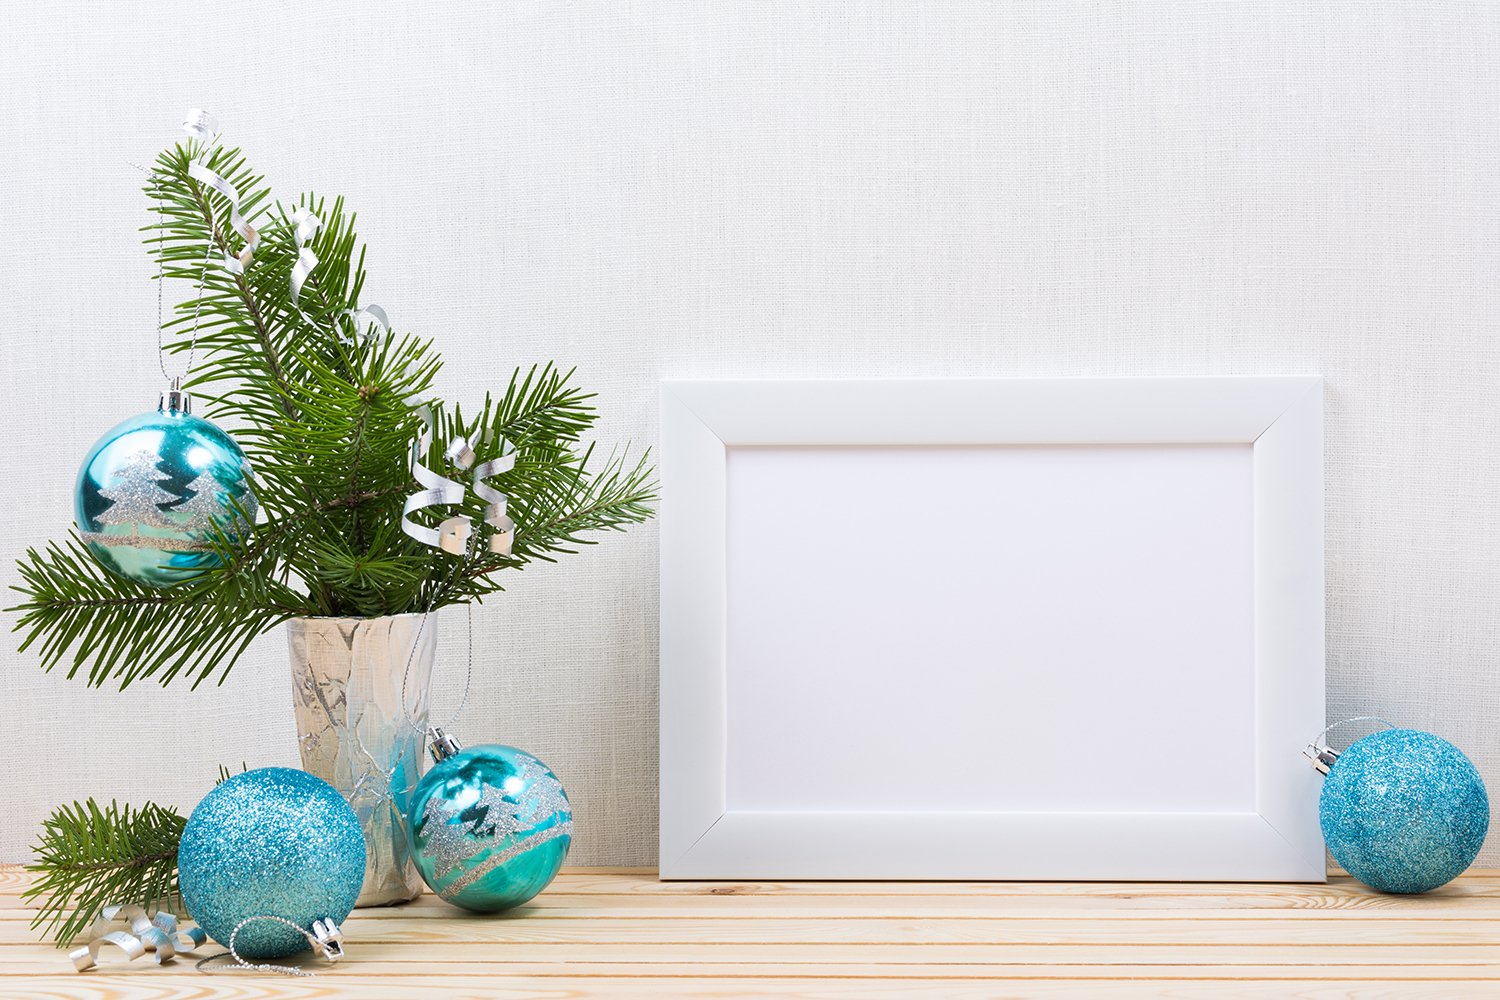 White landscape frame mockup with blue Christmas ornaments example image 2